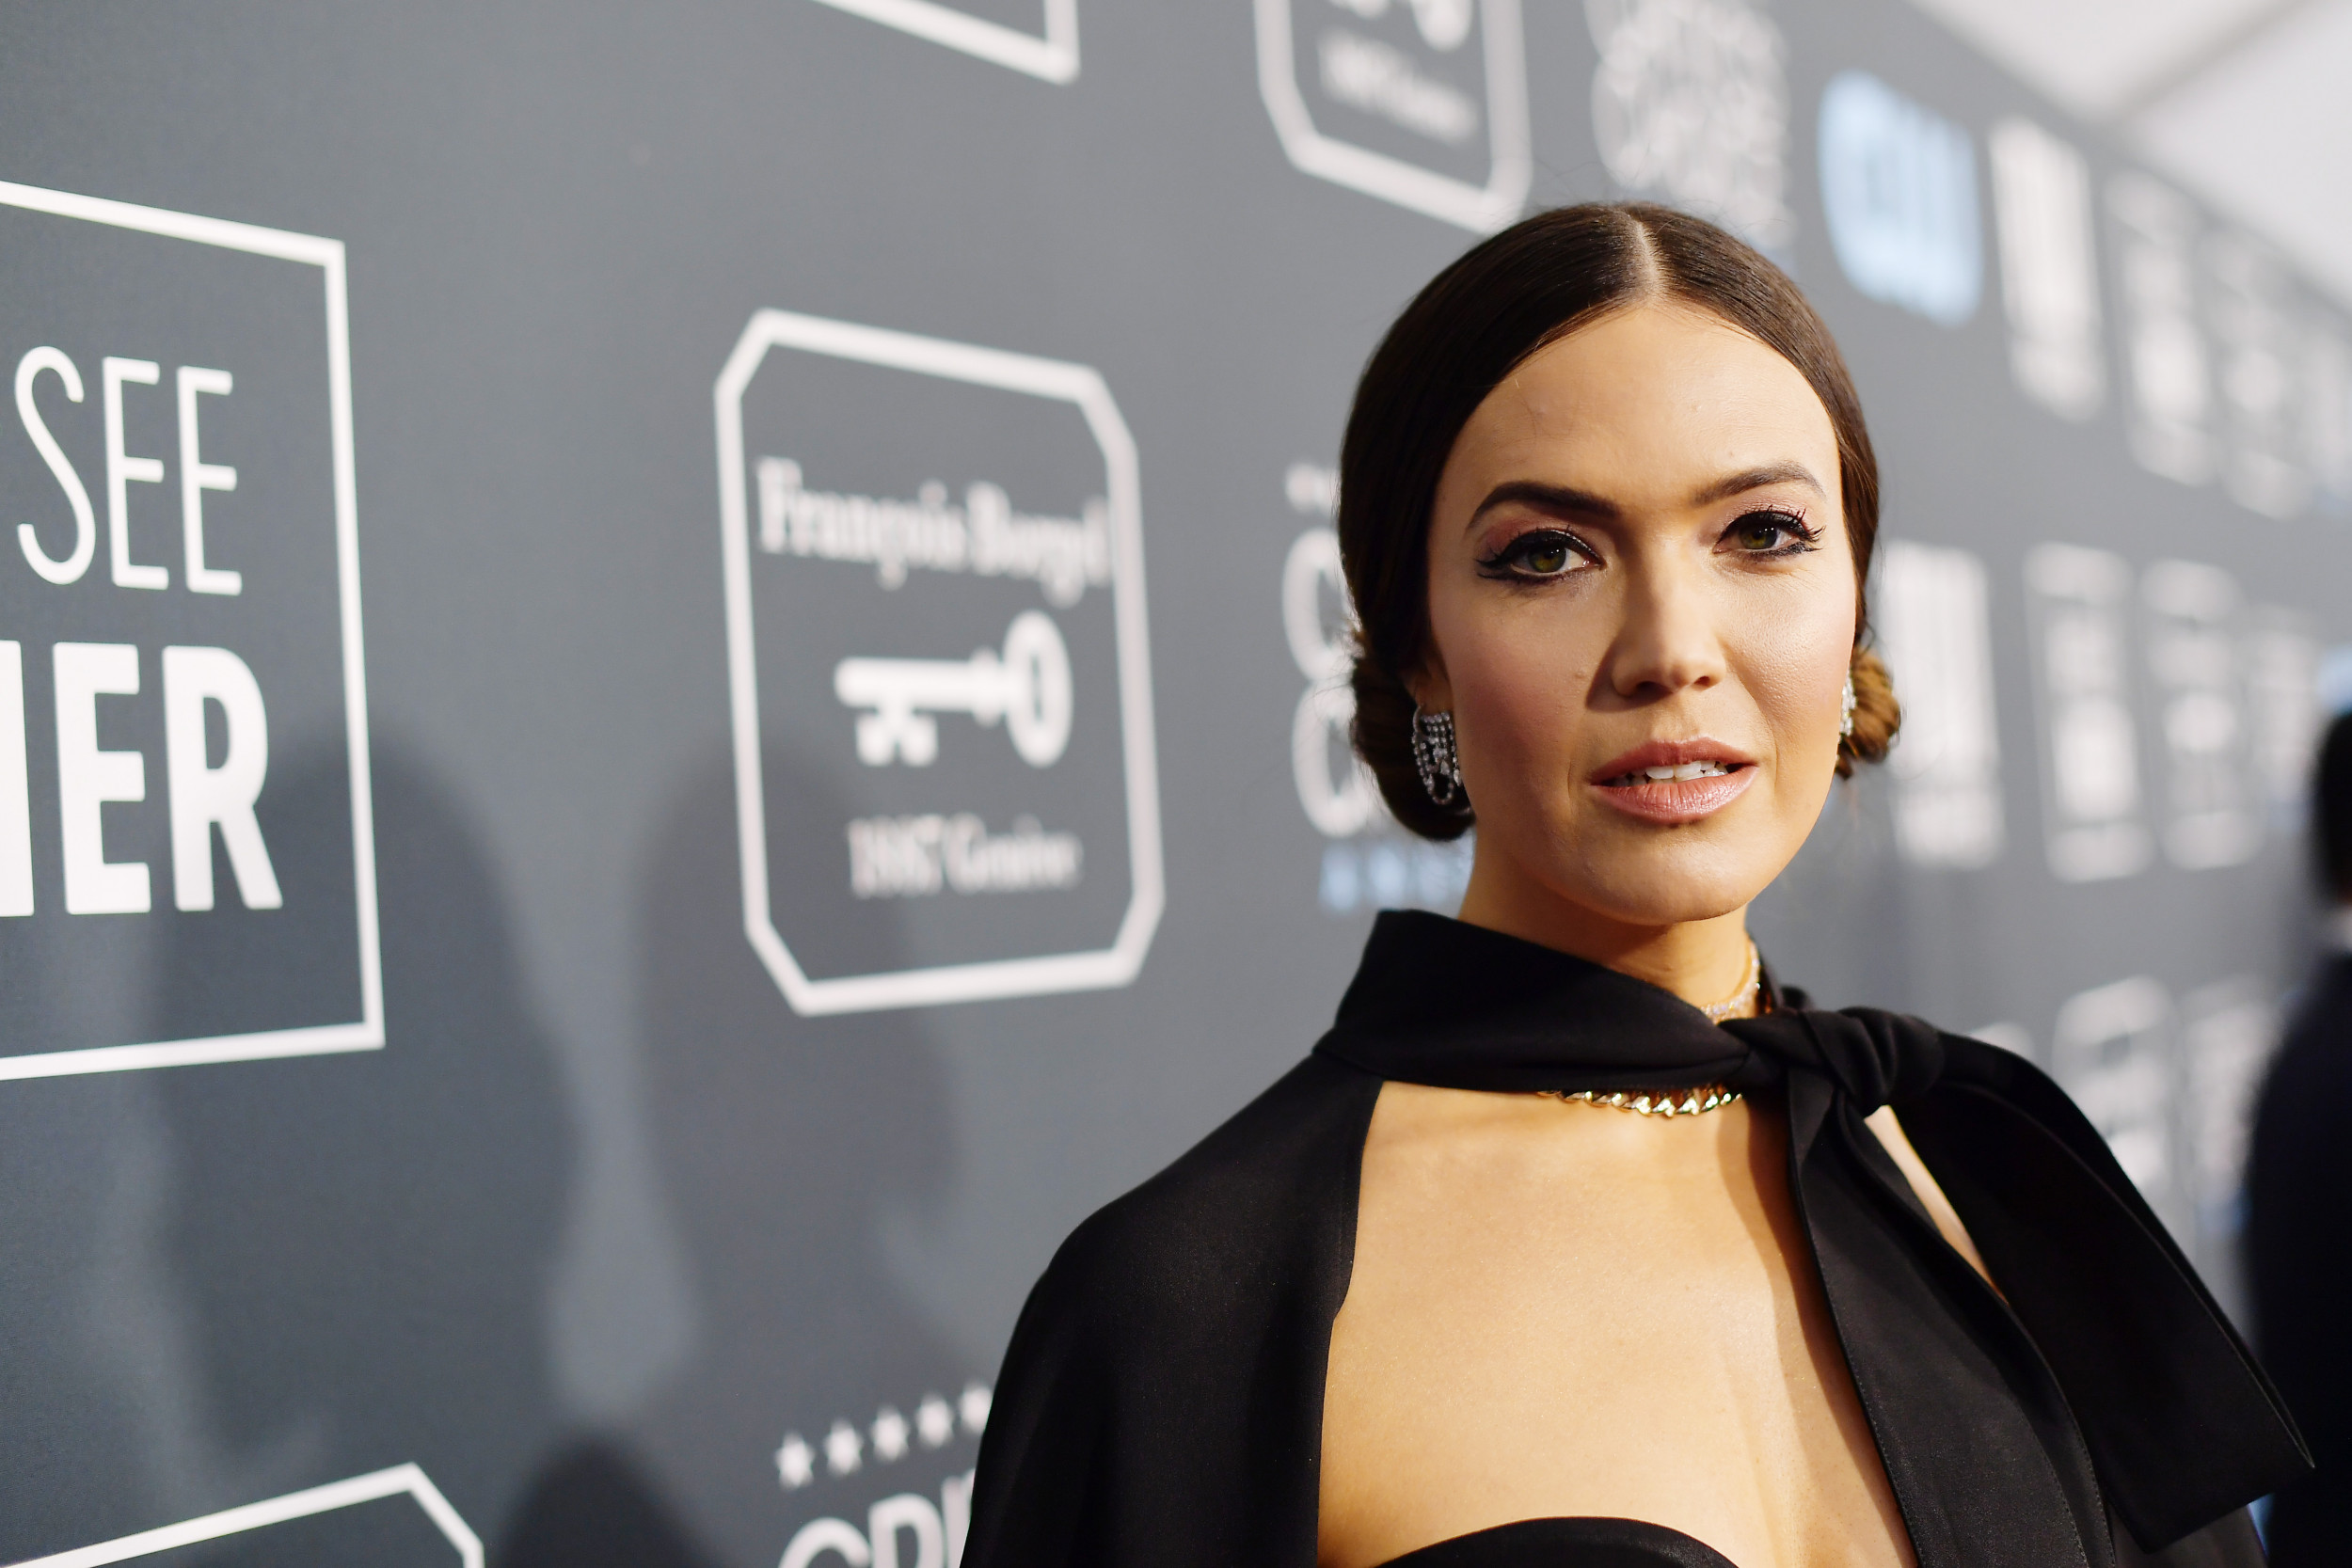 Mandy Moore lashes out at publication over Ryan Adams comments